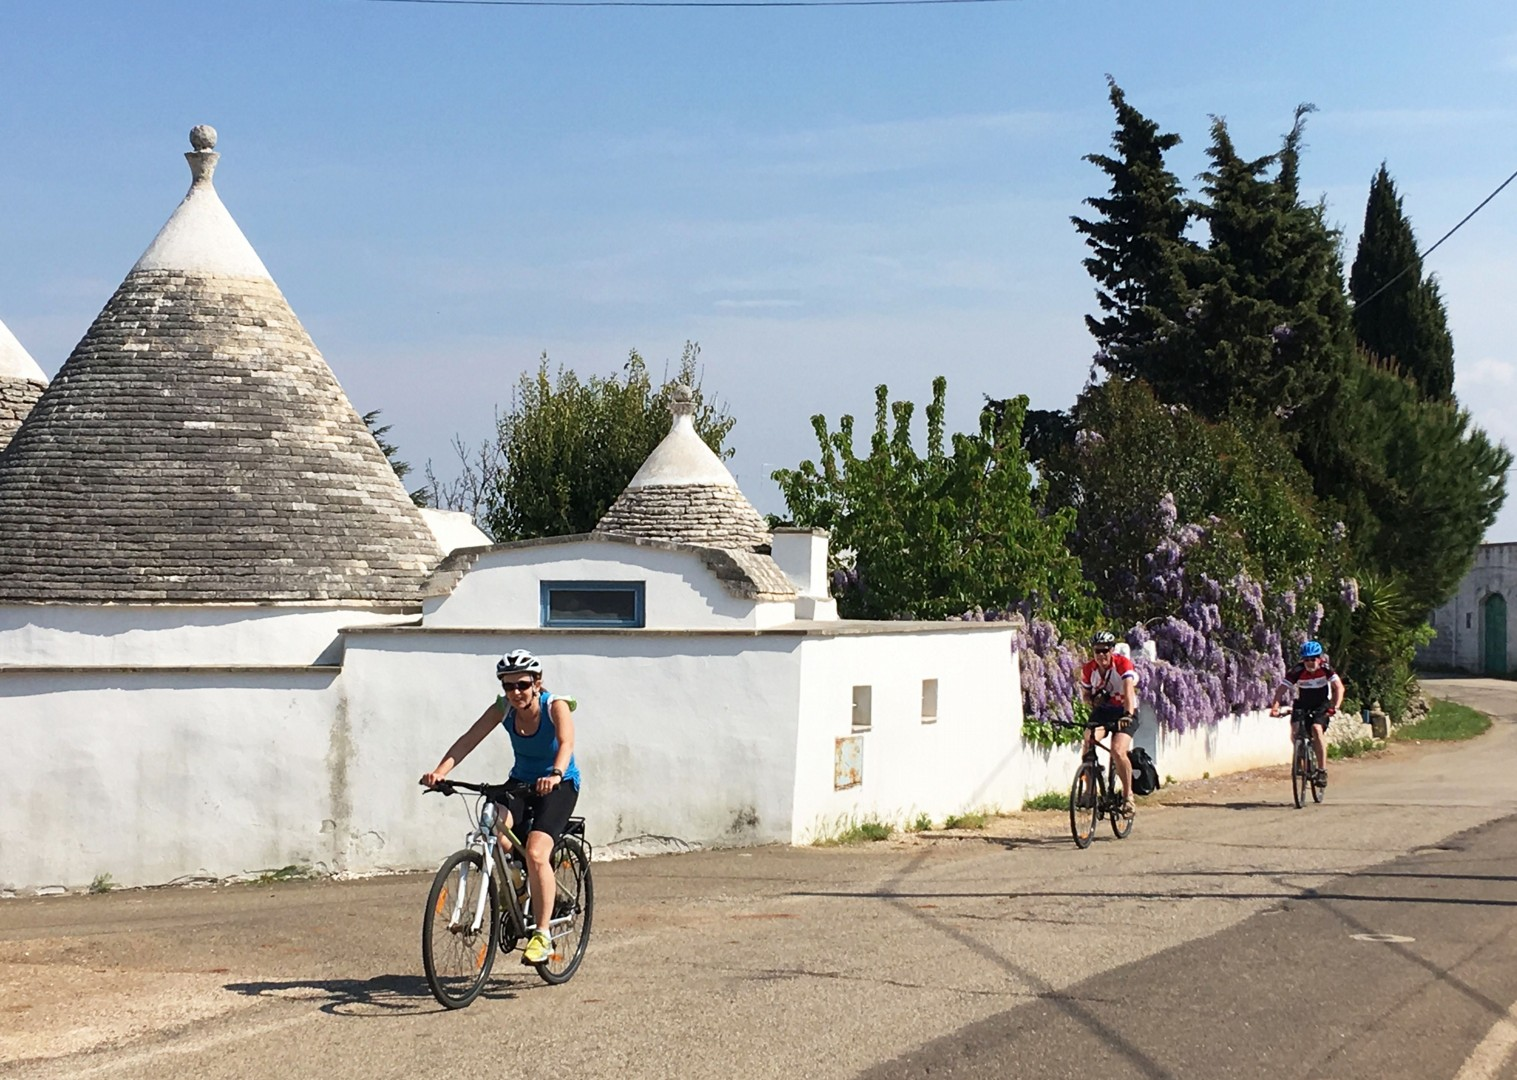 cycling-holiday-in-italy-puglia-Trulli-houses.jpg - Italy - Puglia - Guided Leisure Cycling Holiday - Leisure Cycling